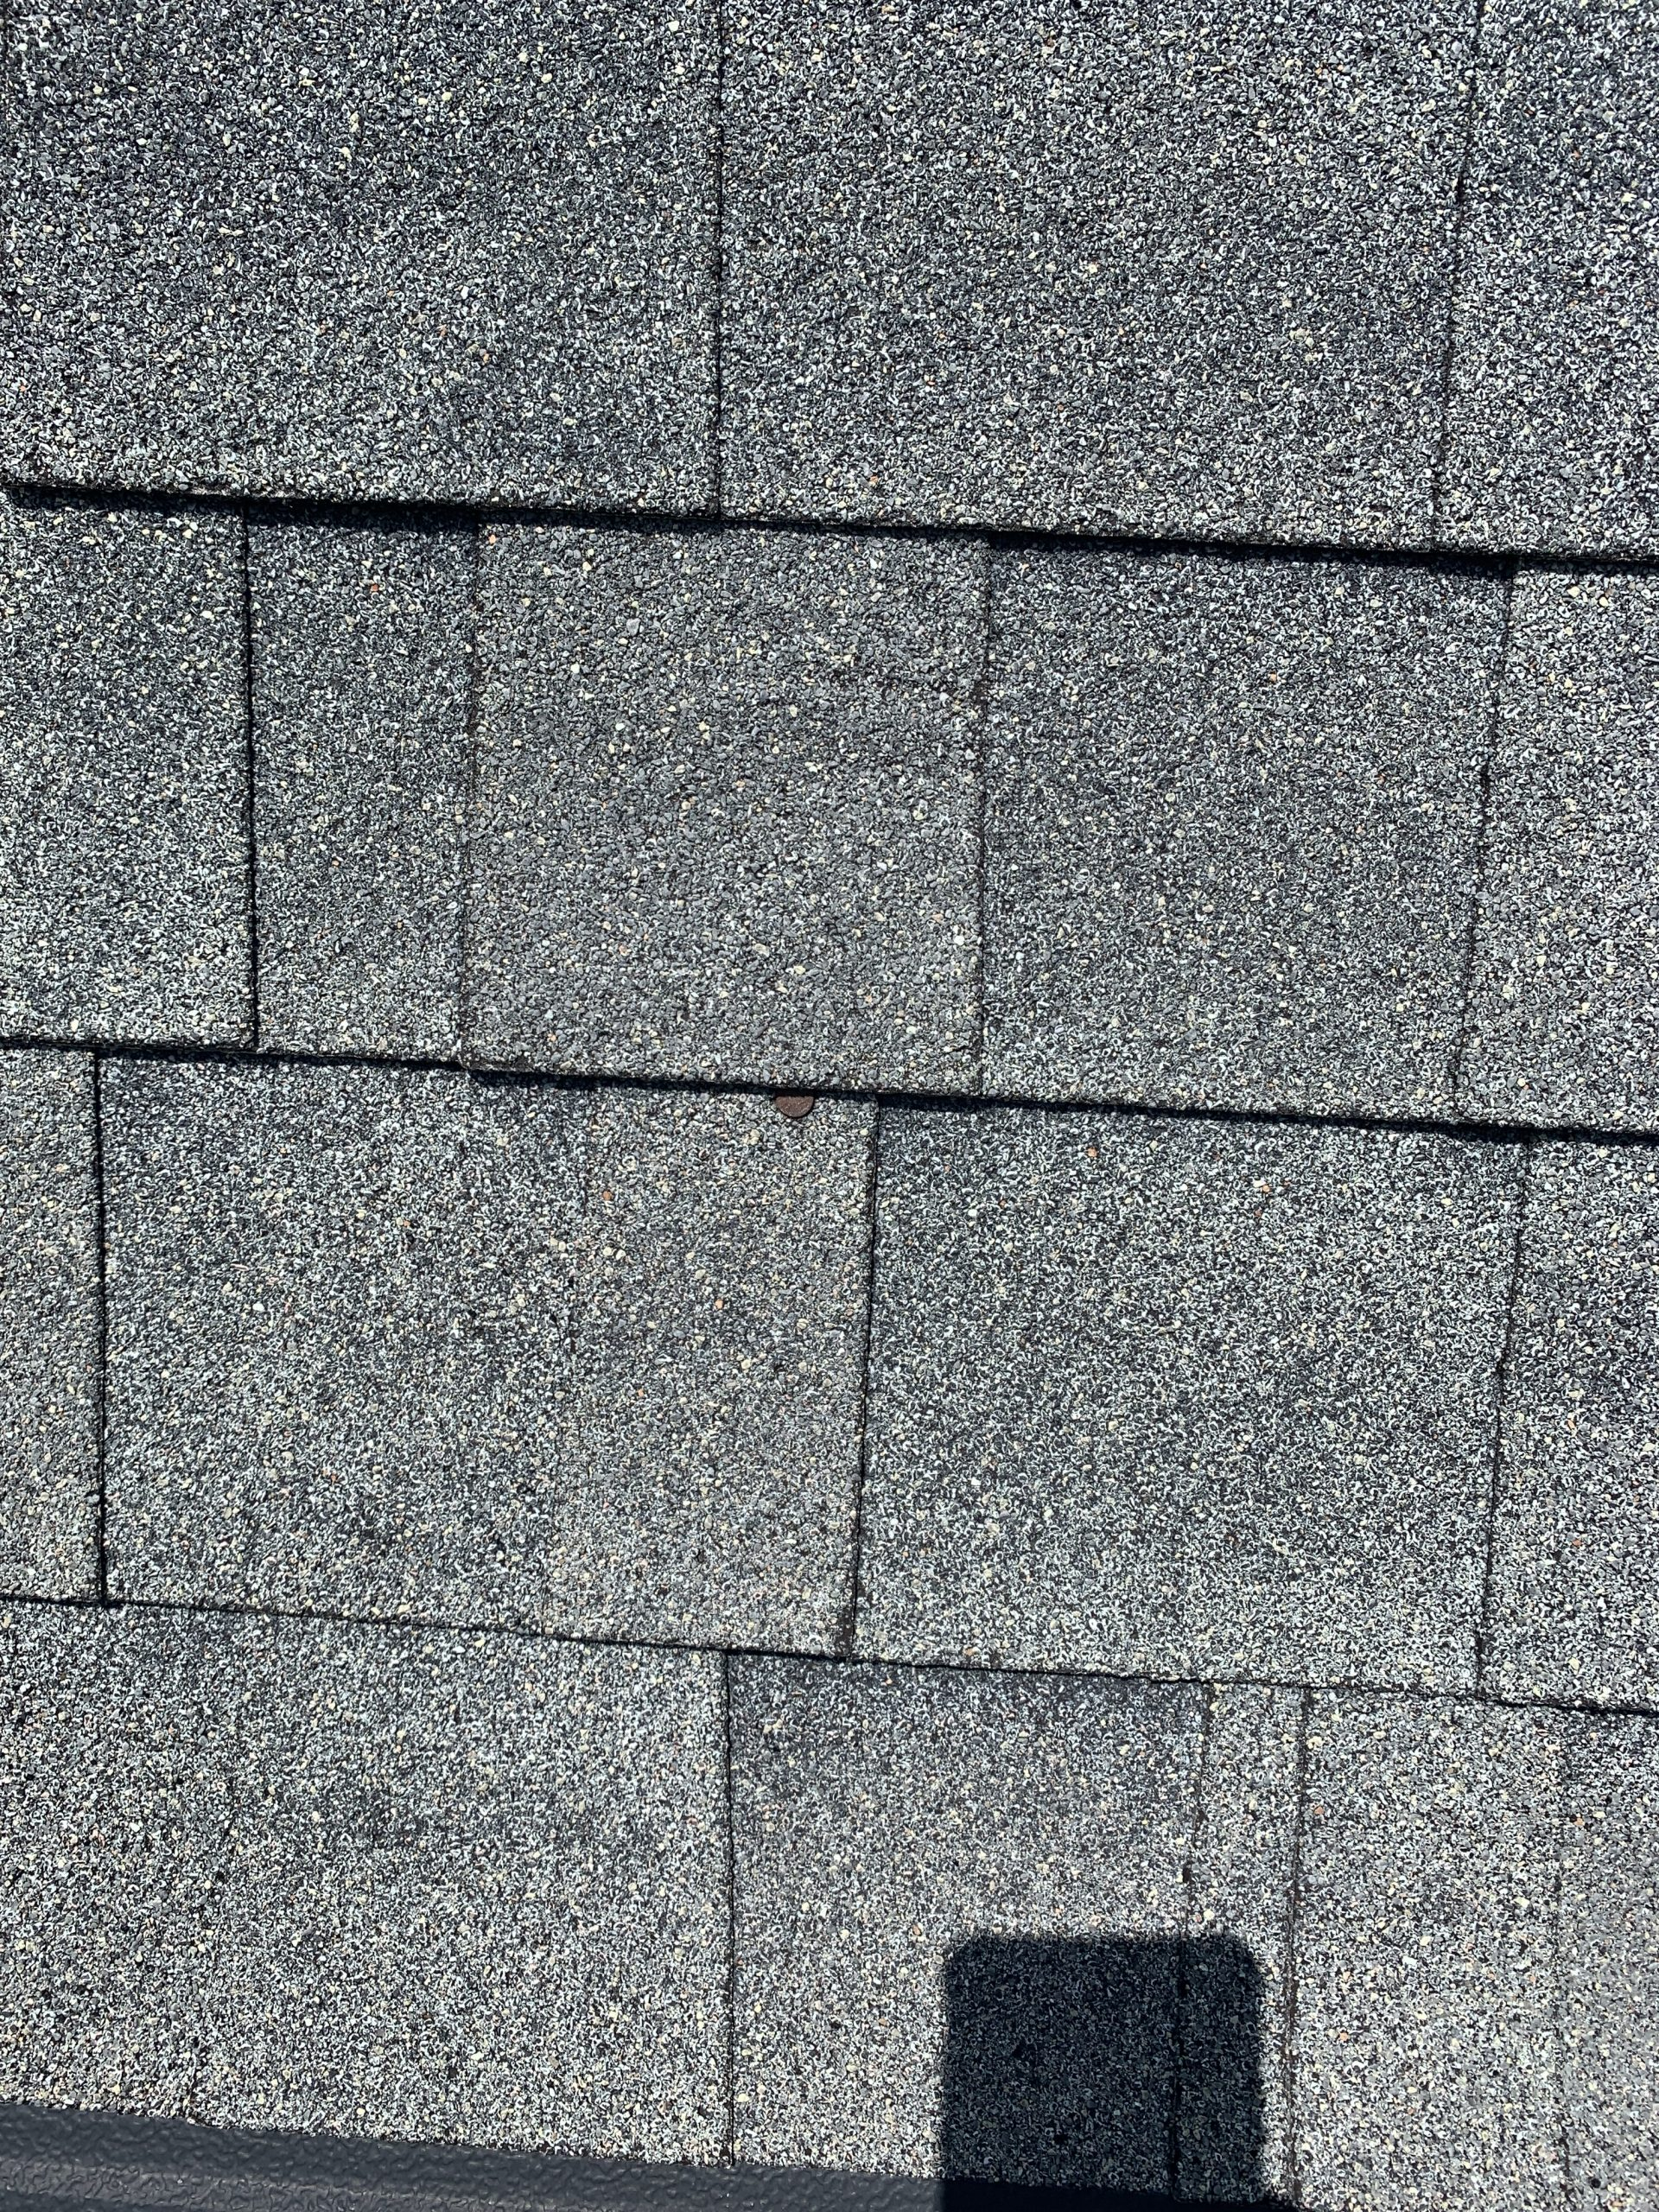 Granular loss and pitting on shingles